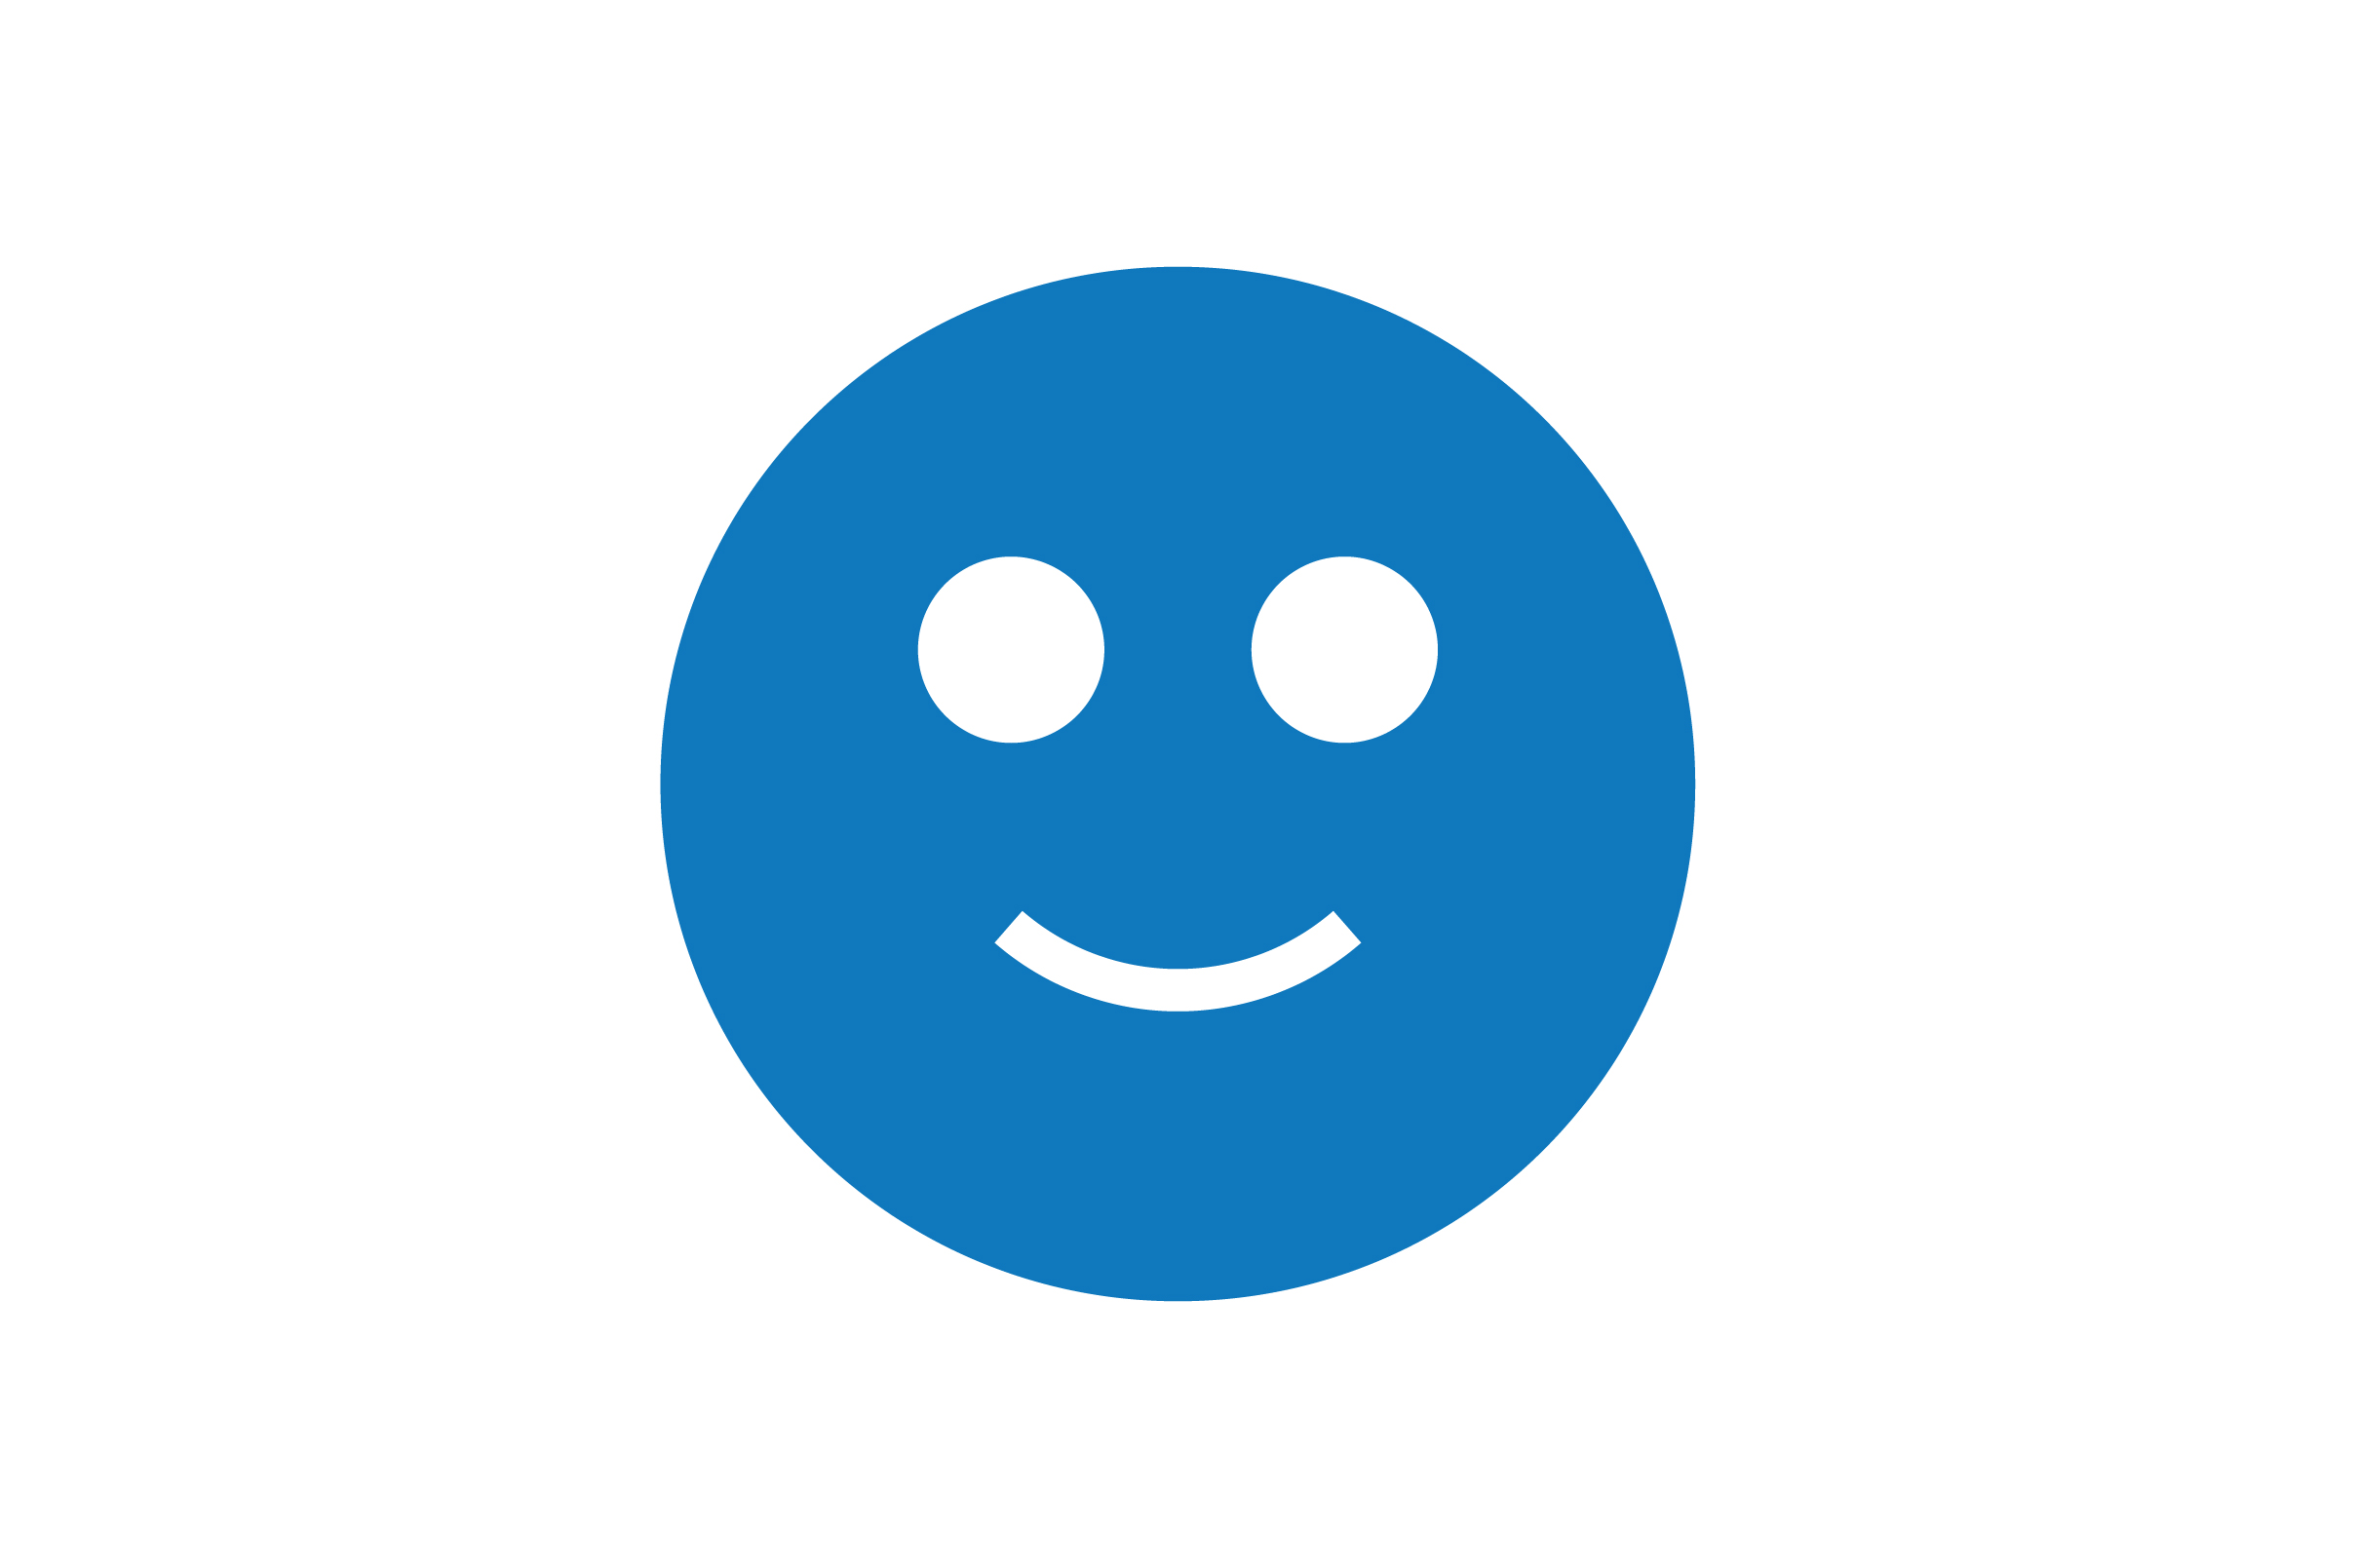 Download Free Smile Emoji Glyph Blue Icon Vector Graphic By Riduwan Molla for Cricut Explore, Silhouette and other cutting machines.